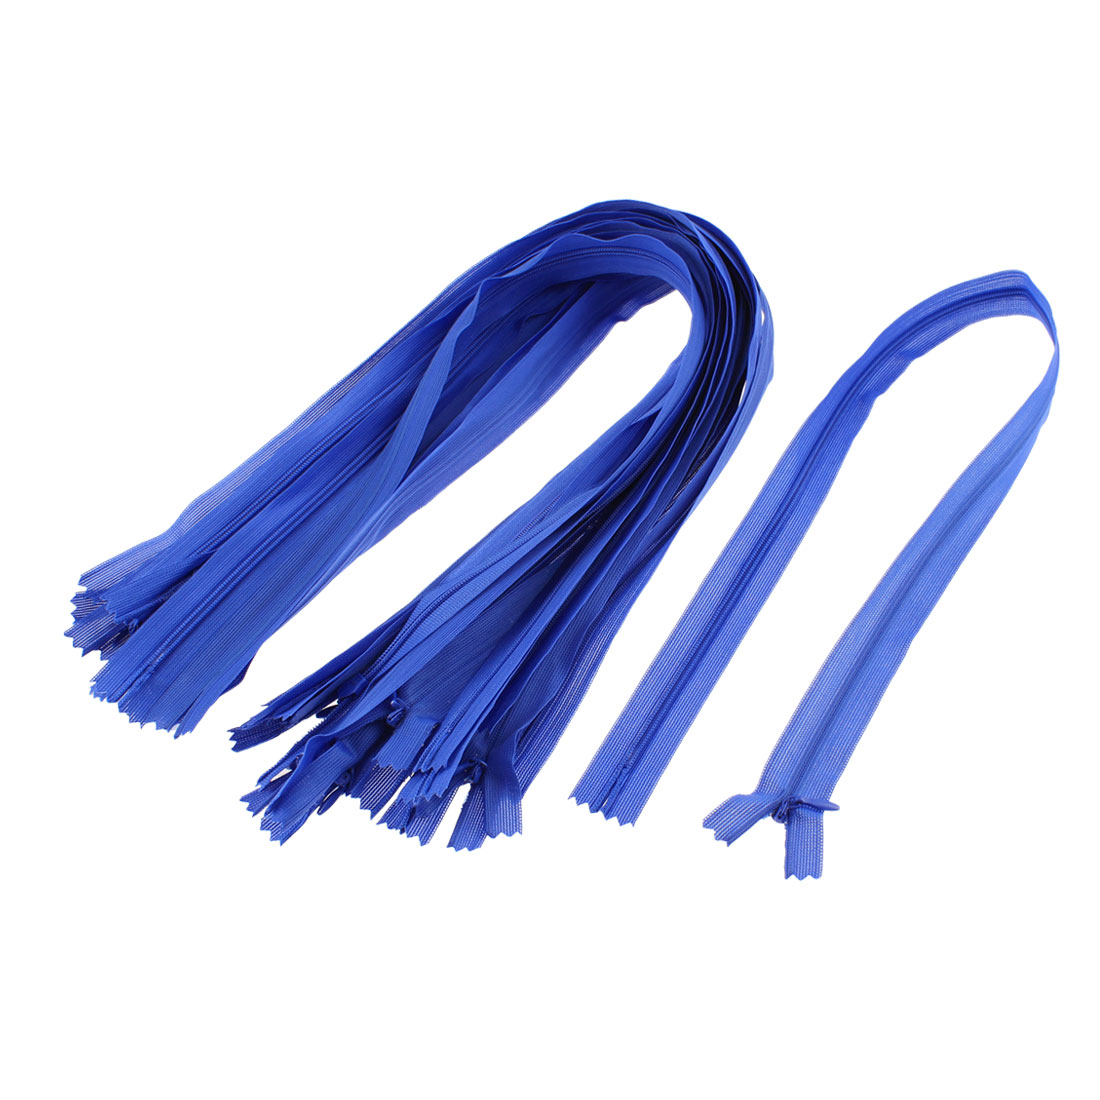 "Blue Nylon Zippers Tailor Sewing Tools 24"" Long 20 Pcs"